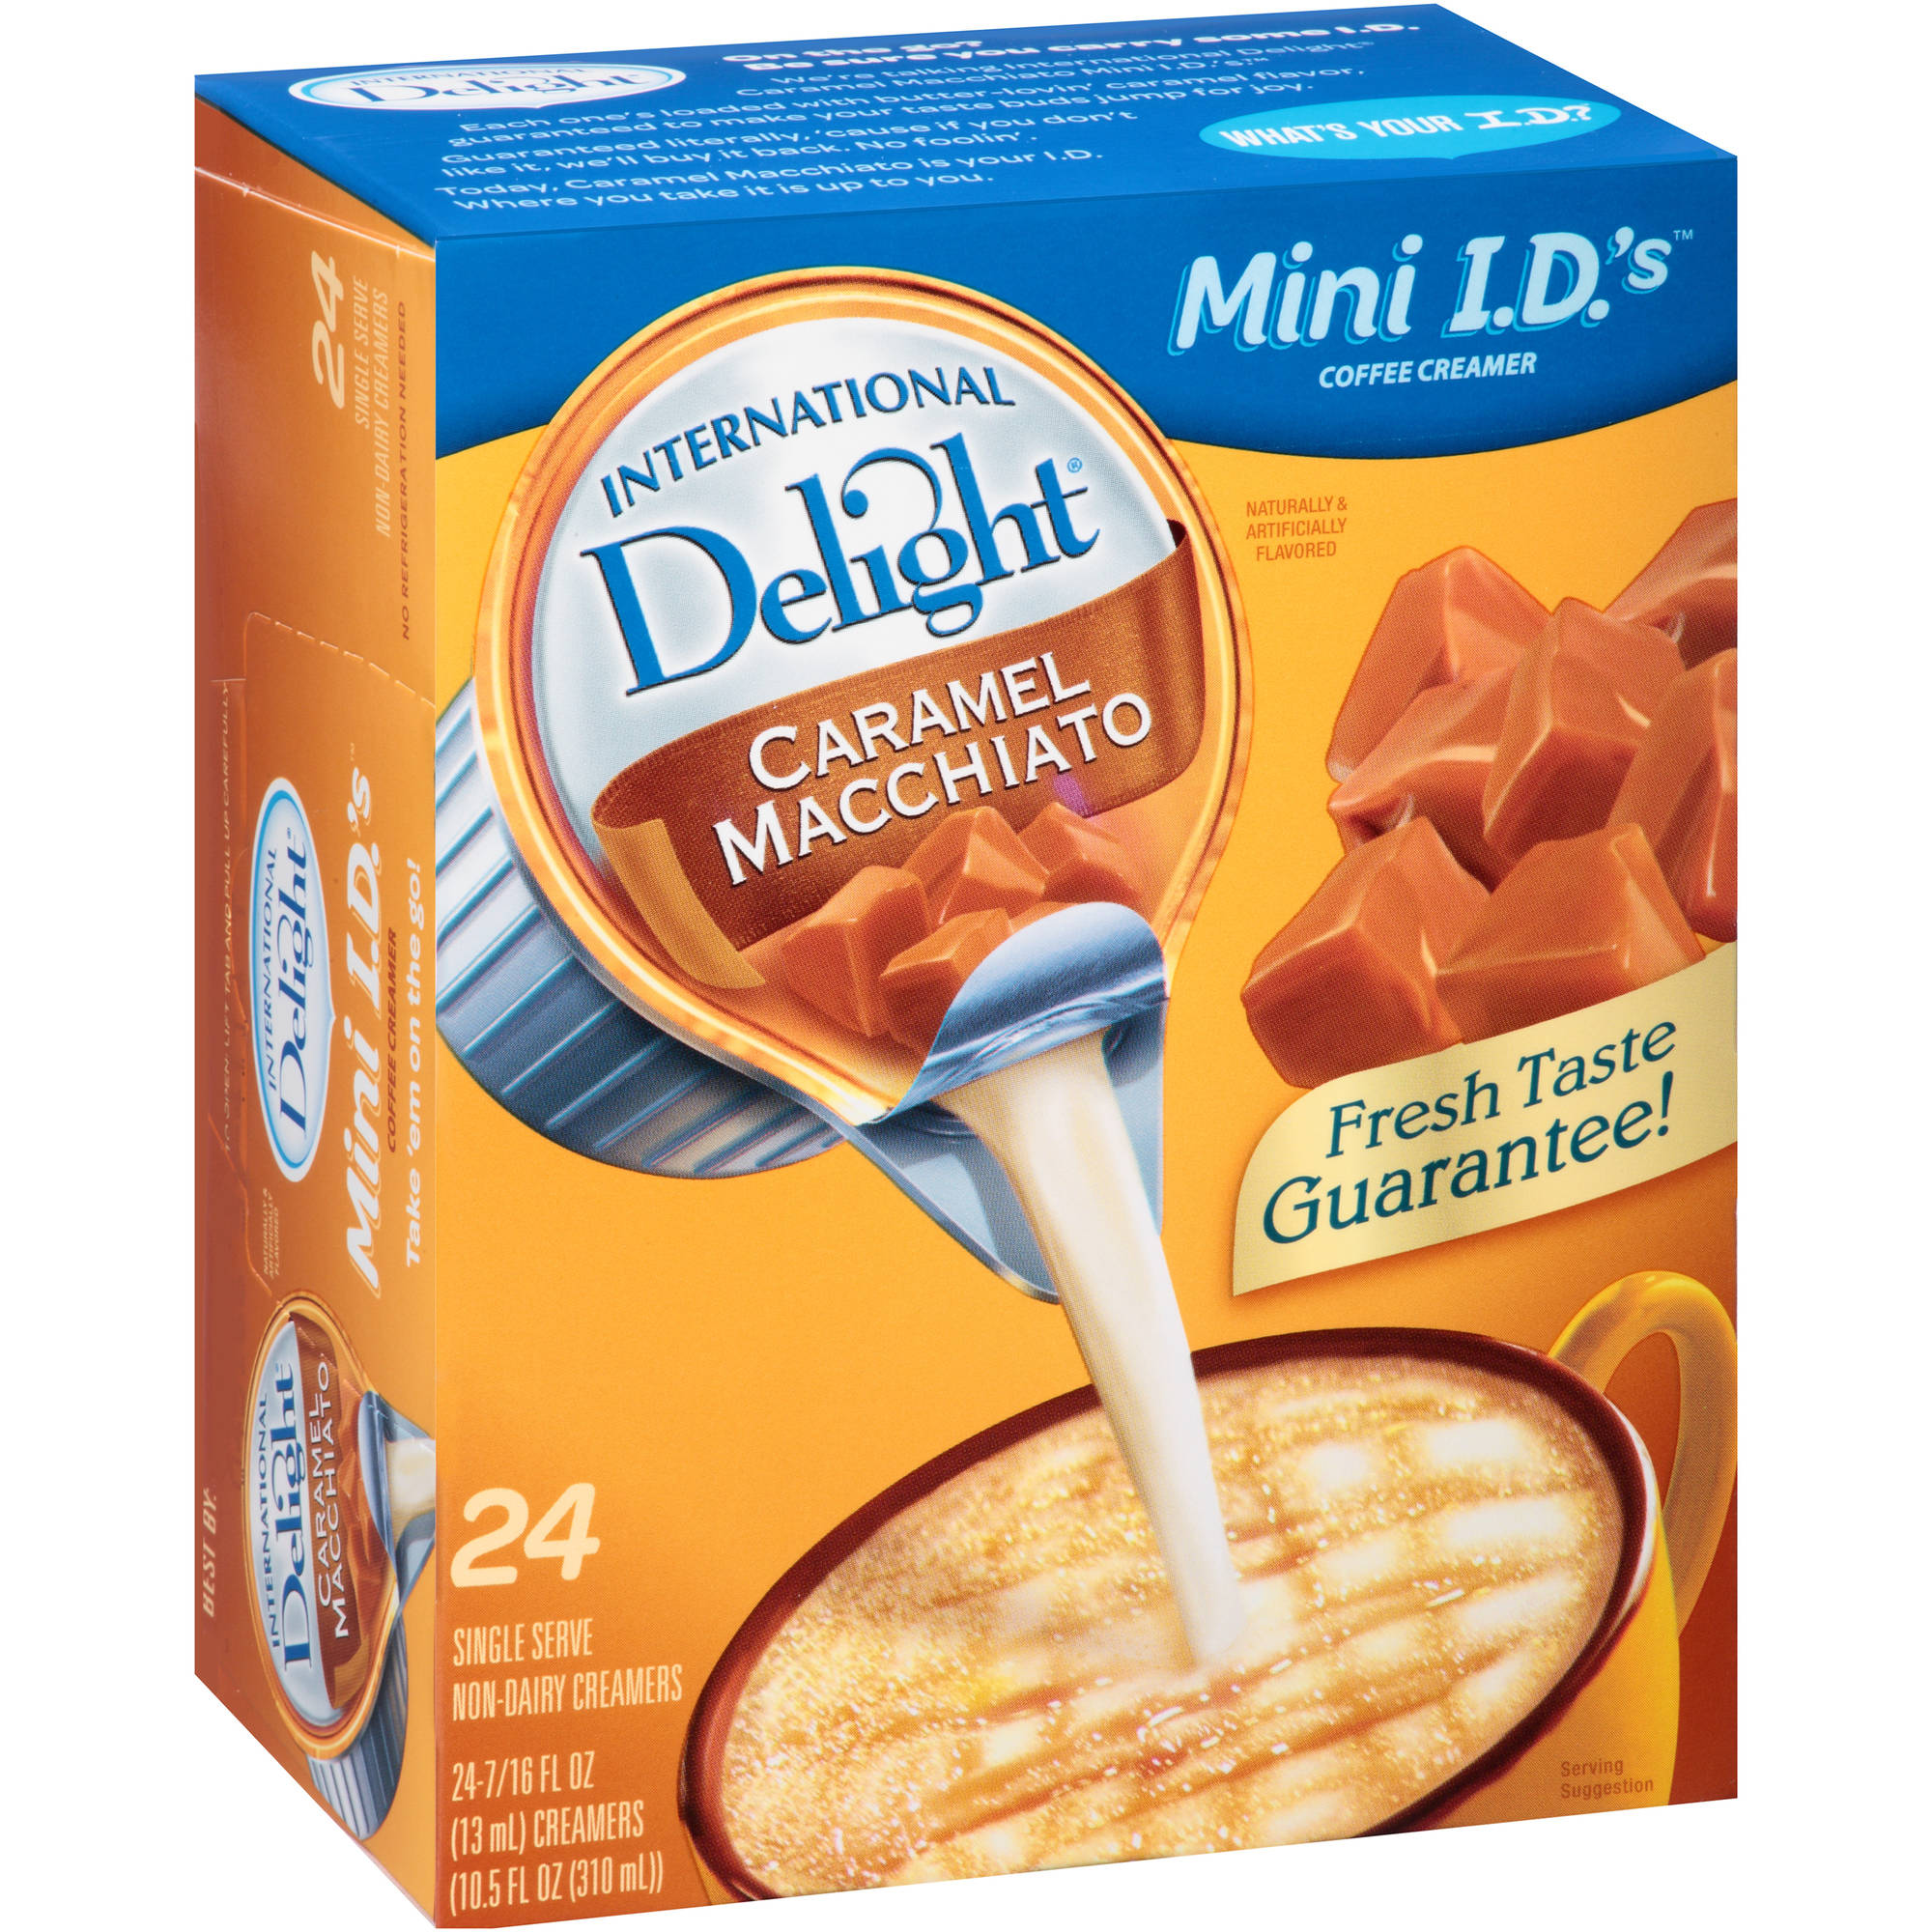 International Delight Mini I.D.'s Caramel Macchiato Non-Dairy Coffee Creamer, 0.44 fl oz, 24 count